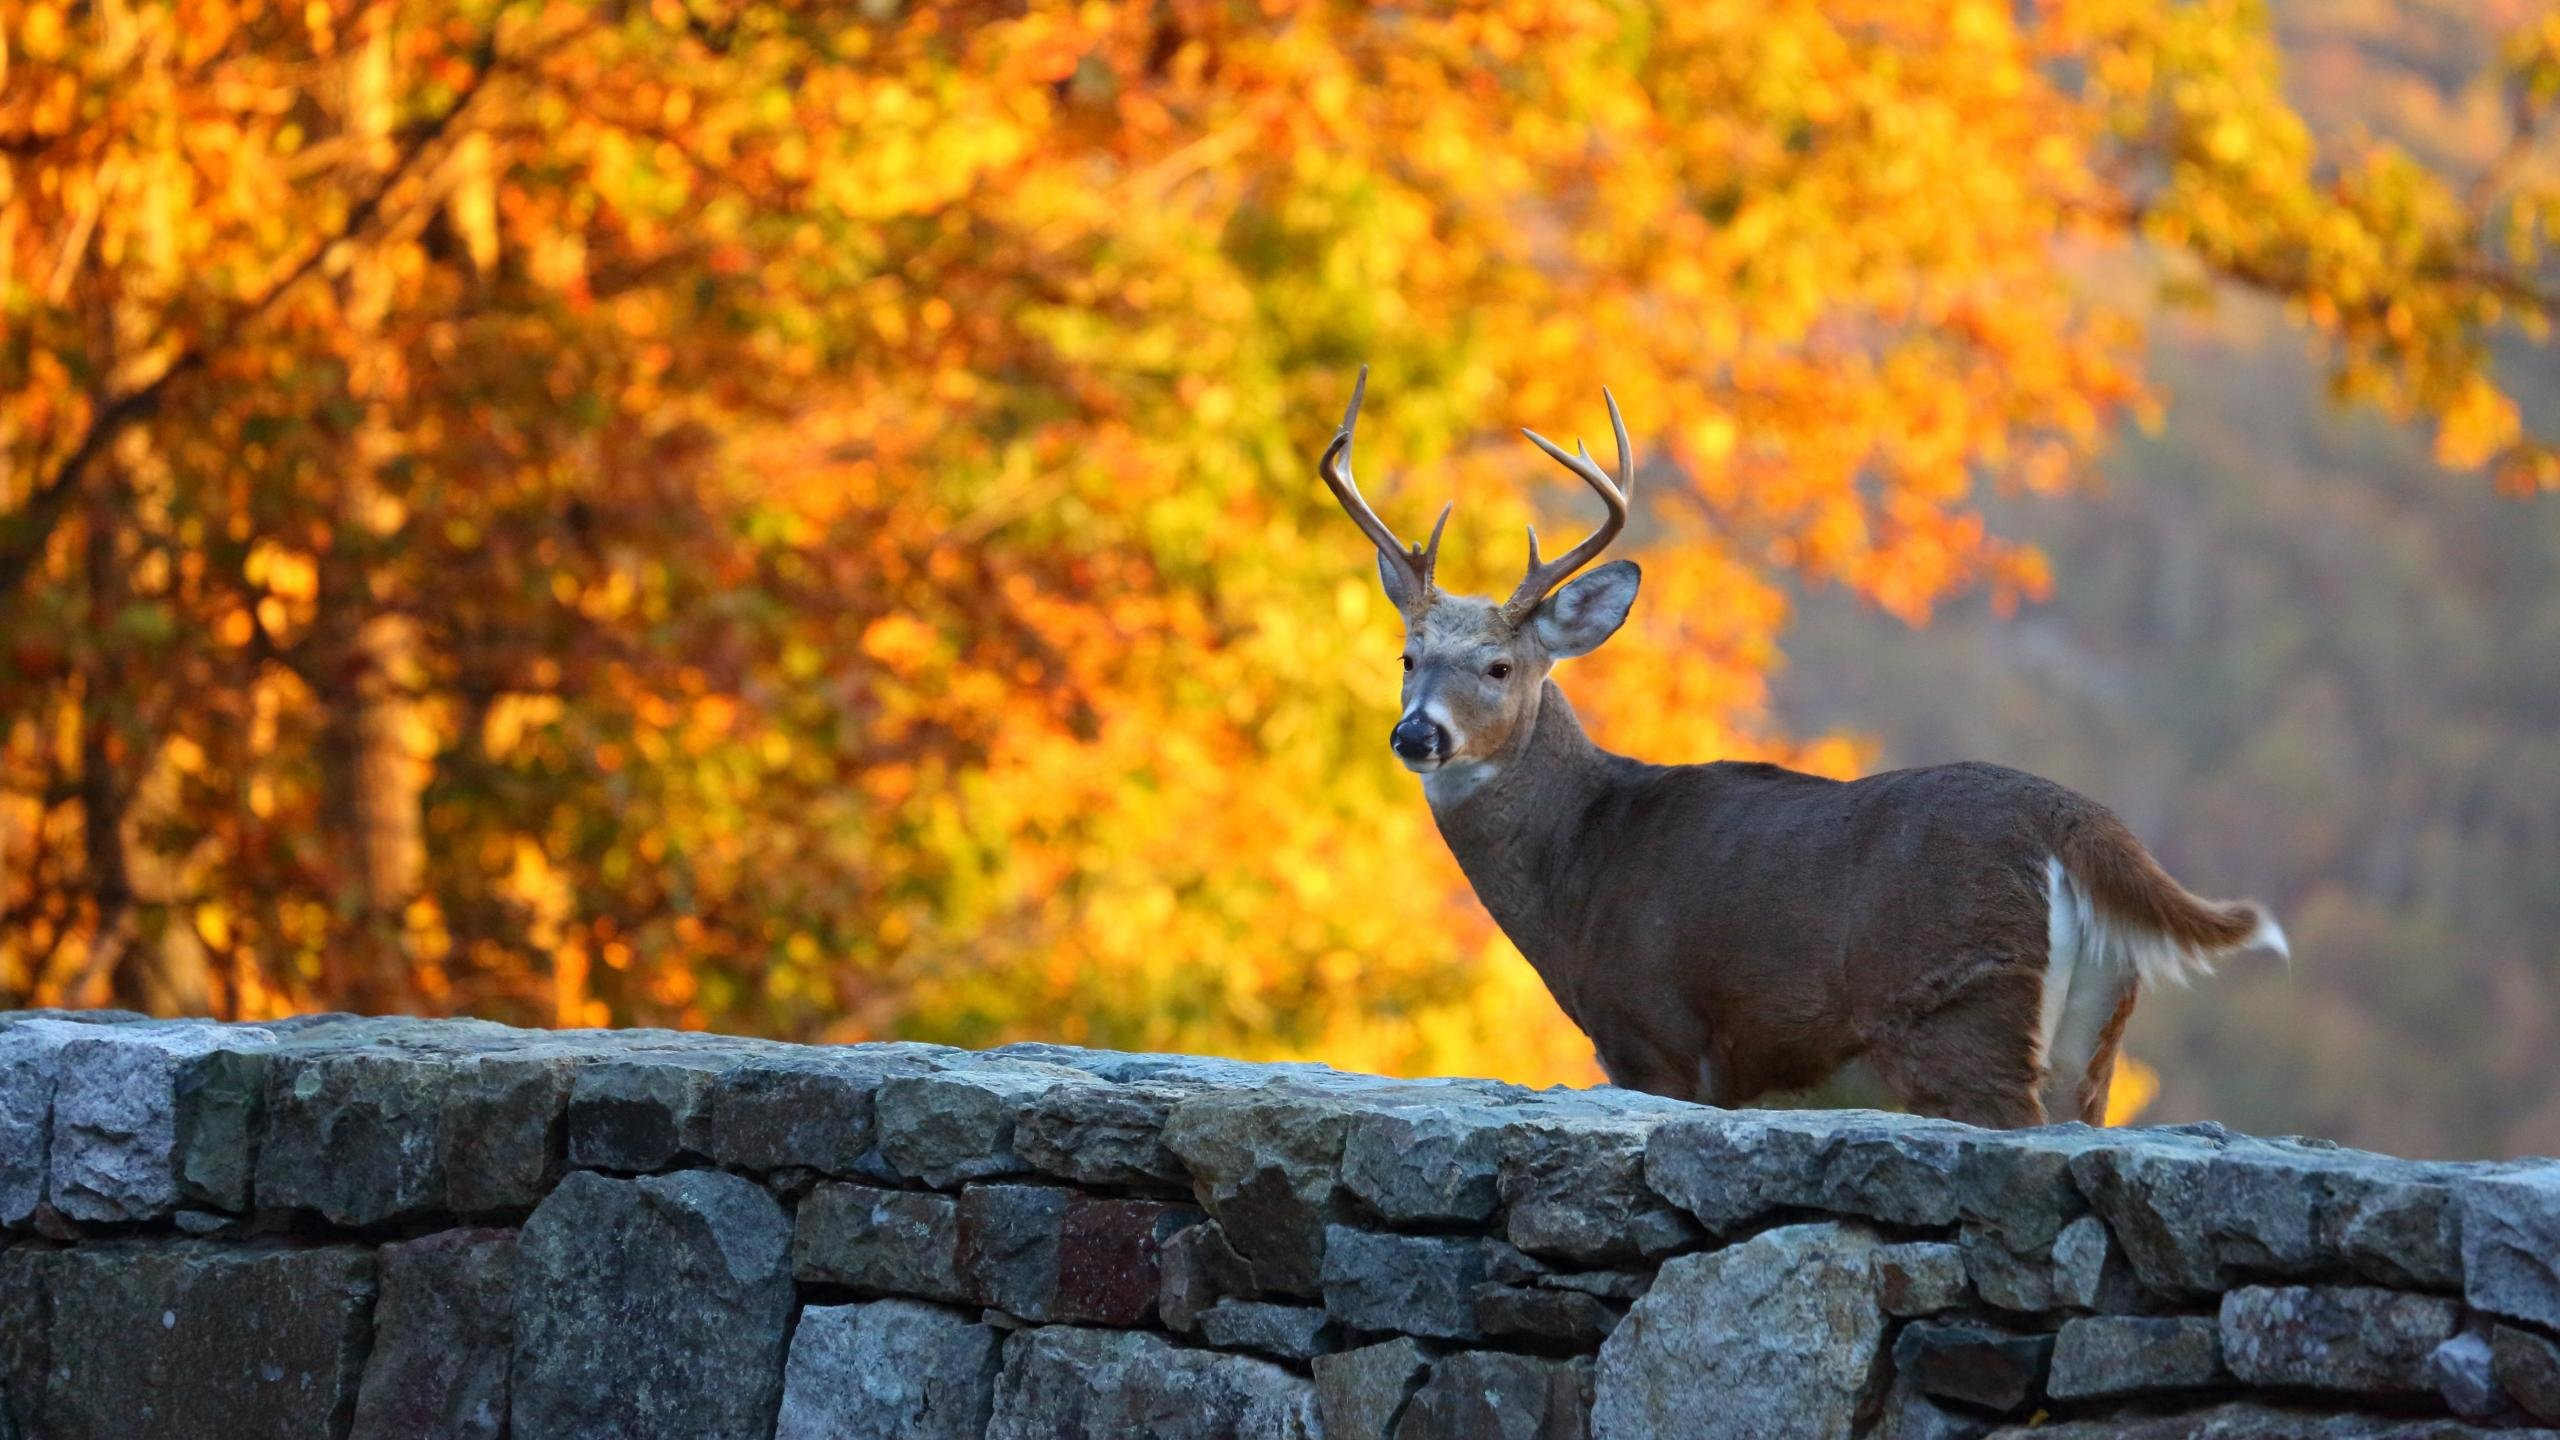 Free Deer high quality wallpaper ID:238737 for hd 2560x1440 PC